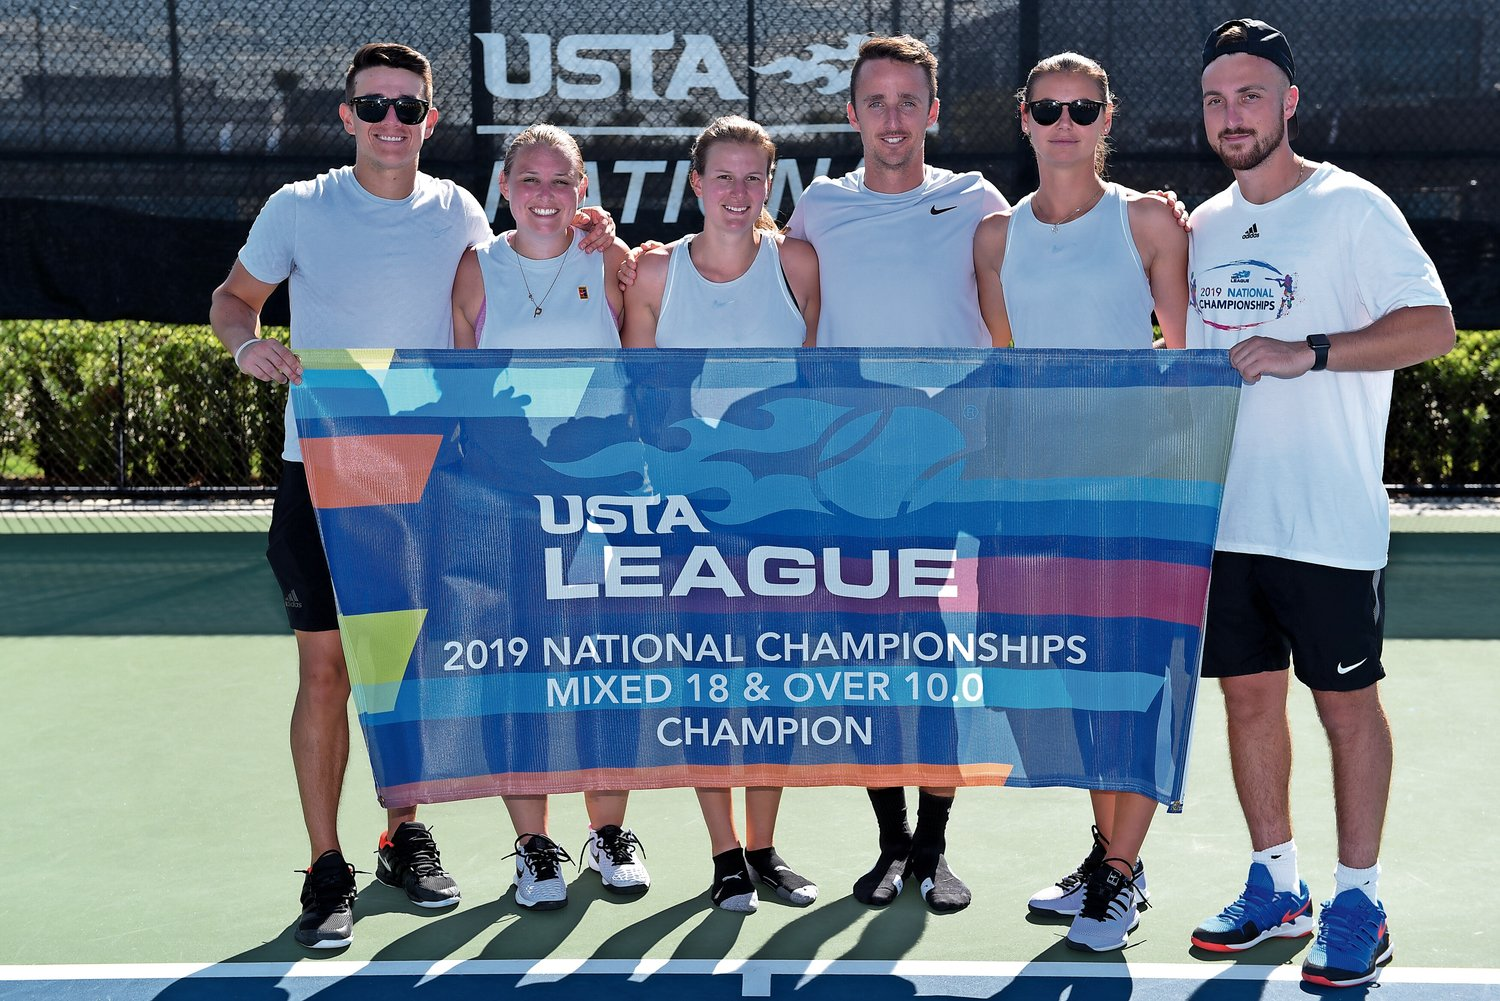 Vivas, left, Sarah Bowen, Samantha Perri, Marks, Volman, and Loic Minery represented the United States' eastern section at the USTA League Championship in Orlando, Florida.